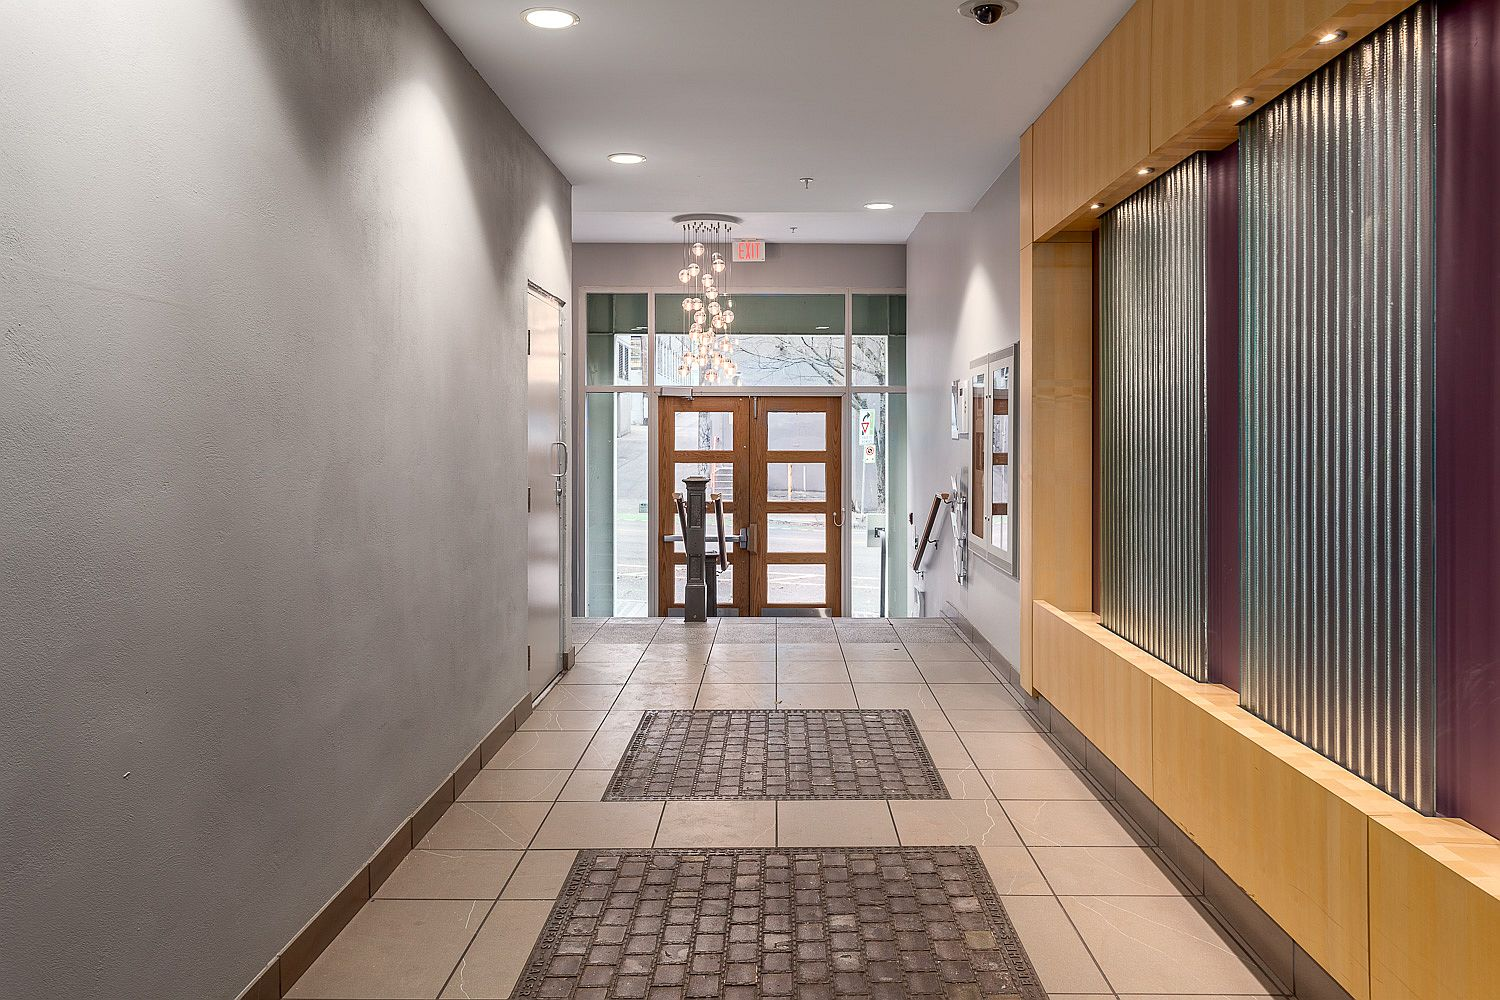 Common hallways with 1911 radiators give the building an authentic modern industrial vibe